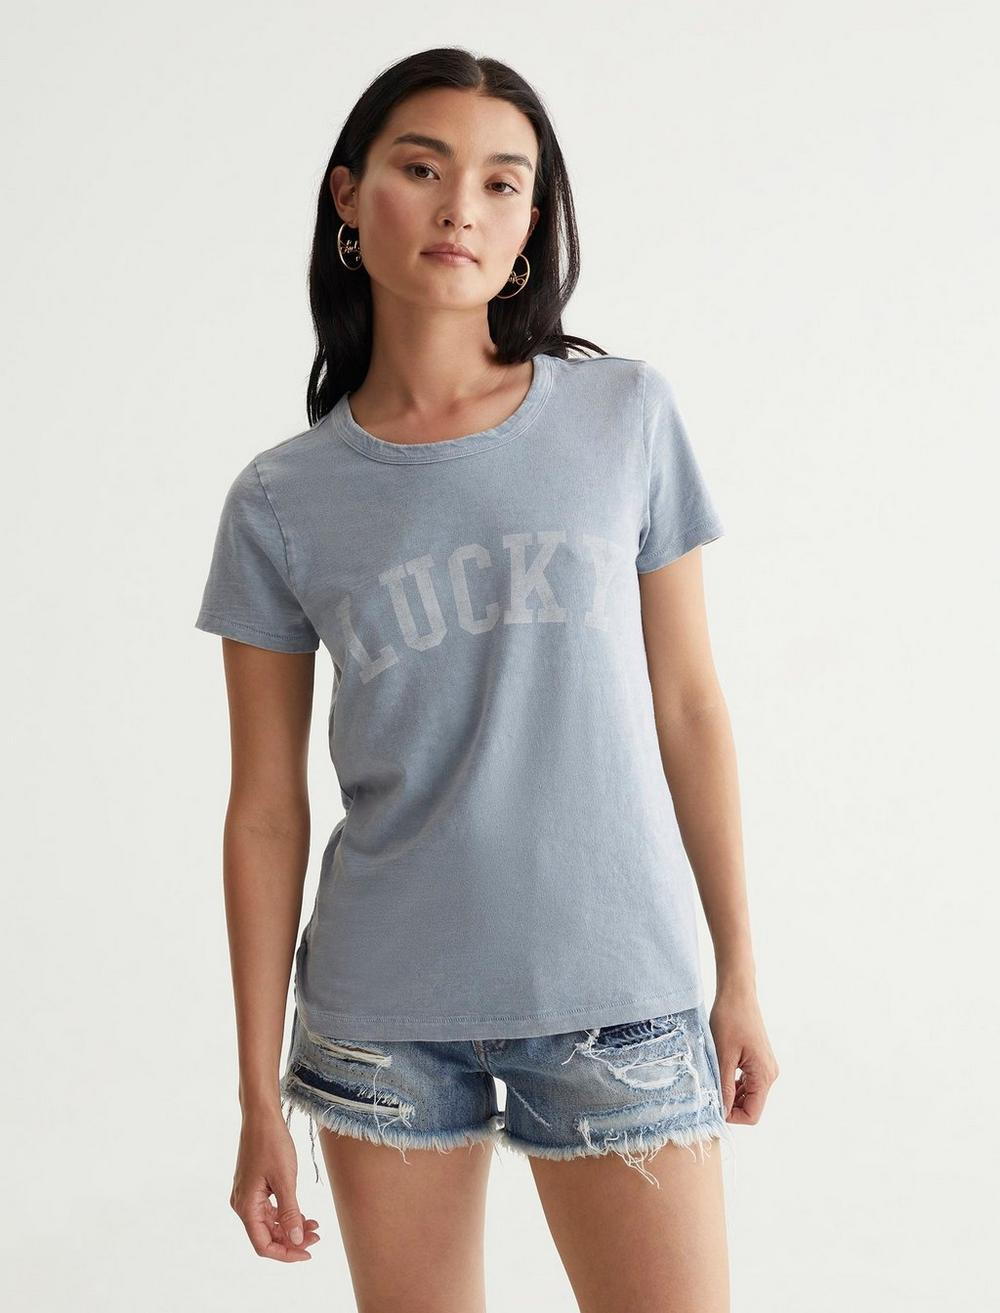 LUCKY FONT CLASSIC TEE, image 1